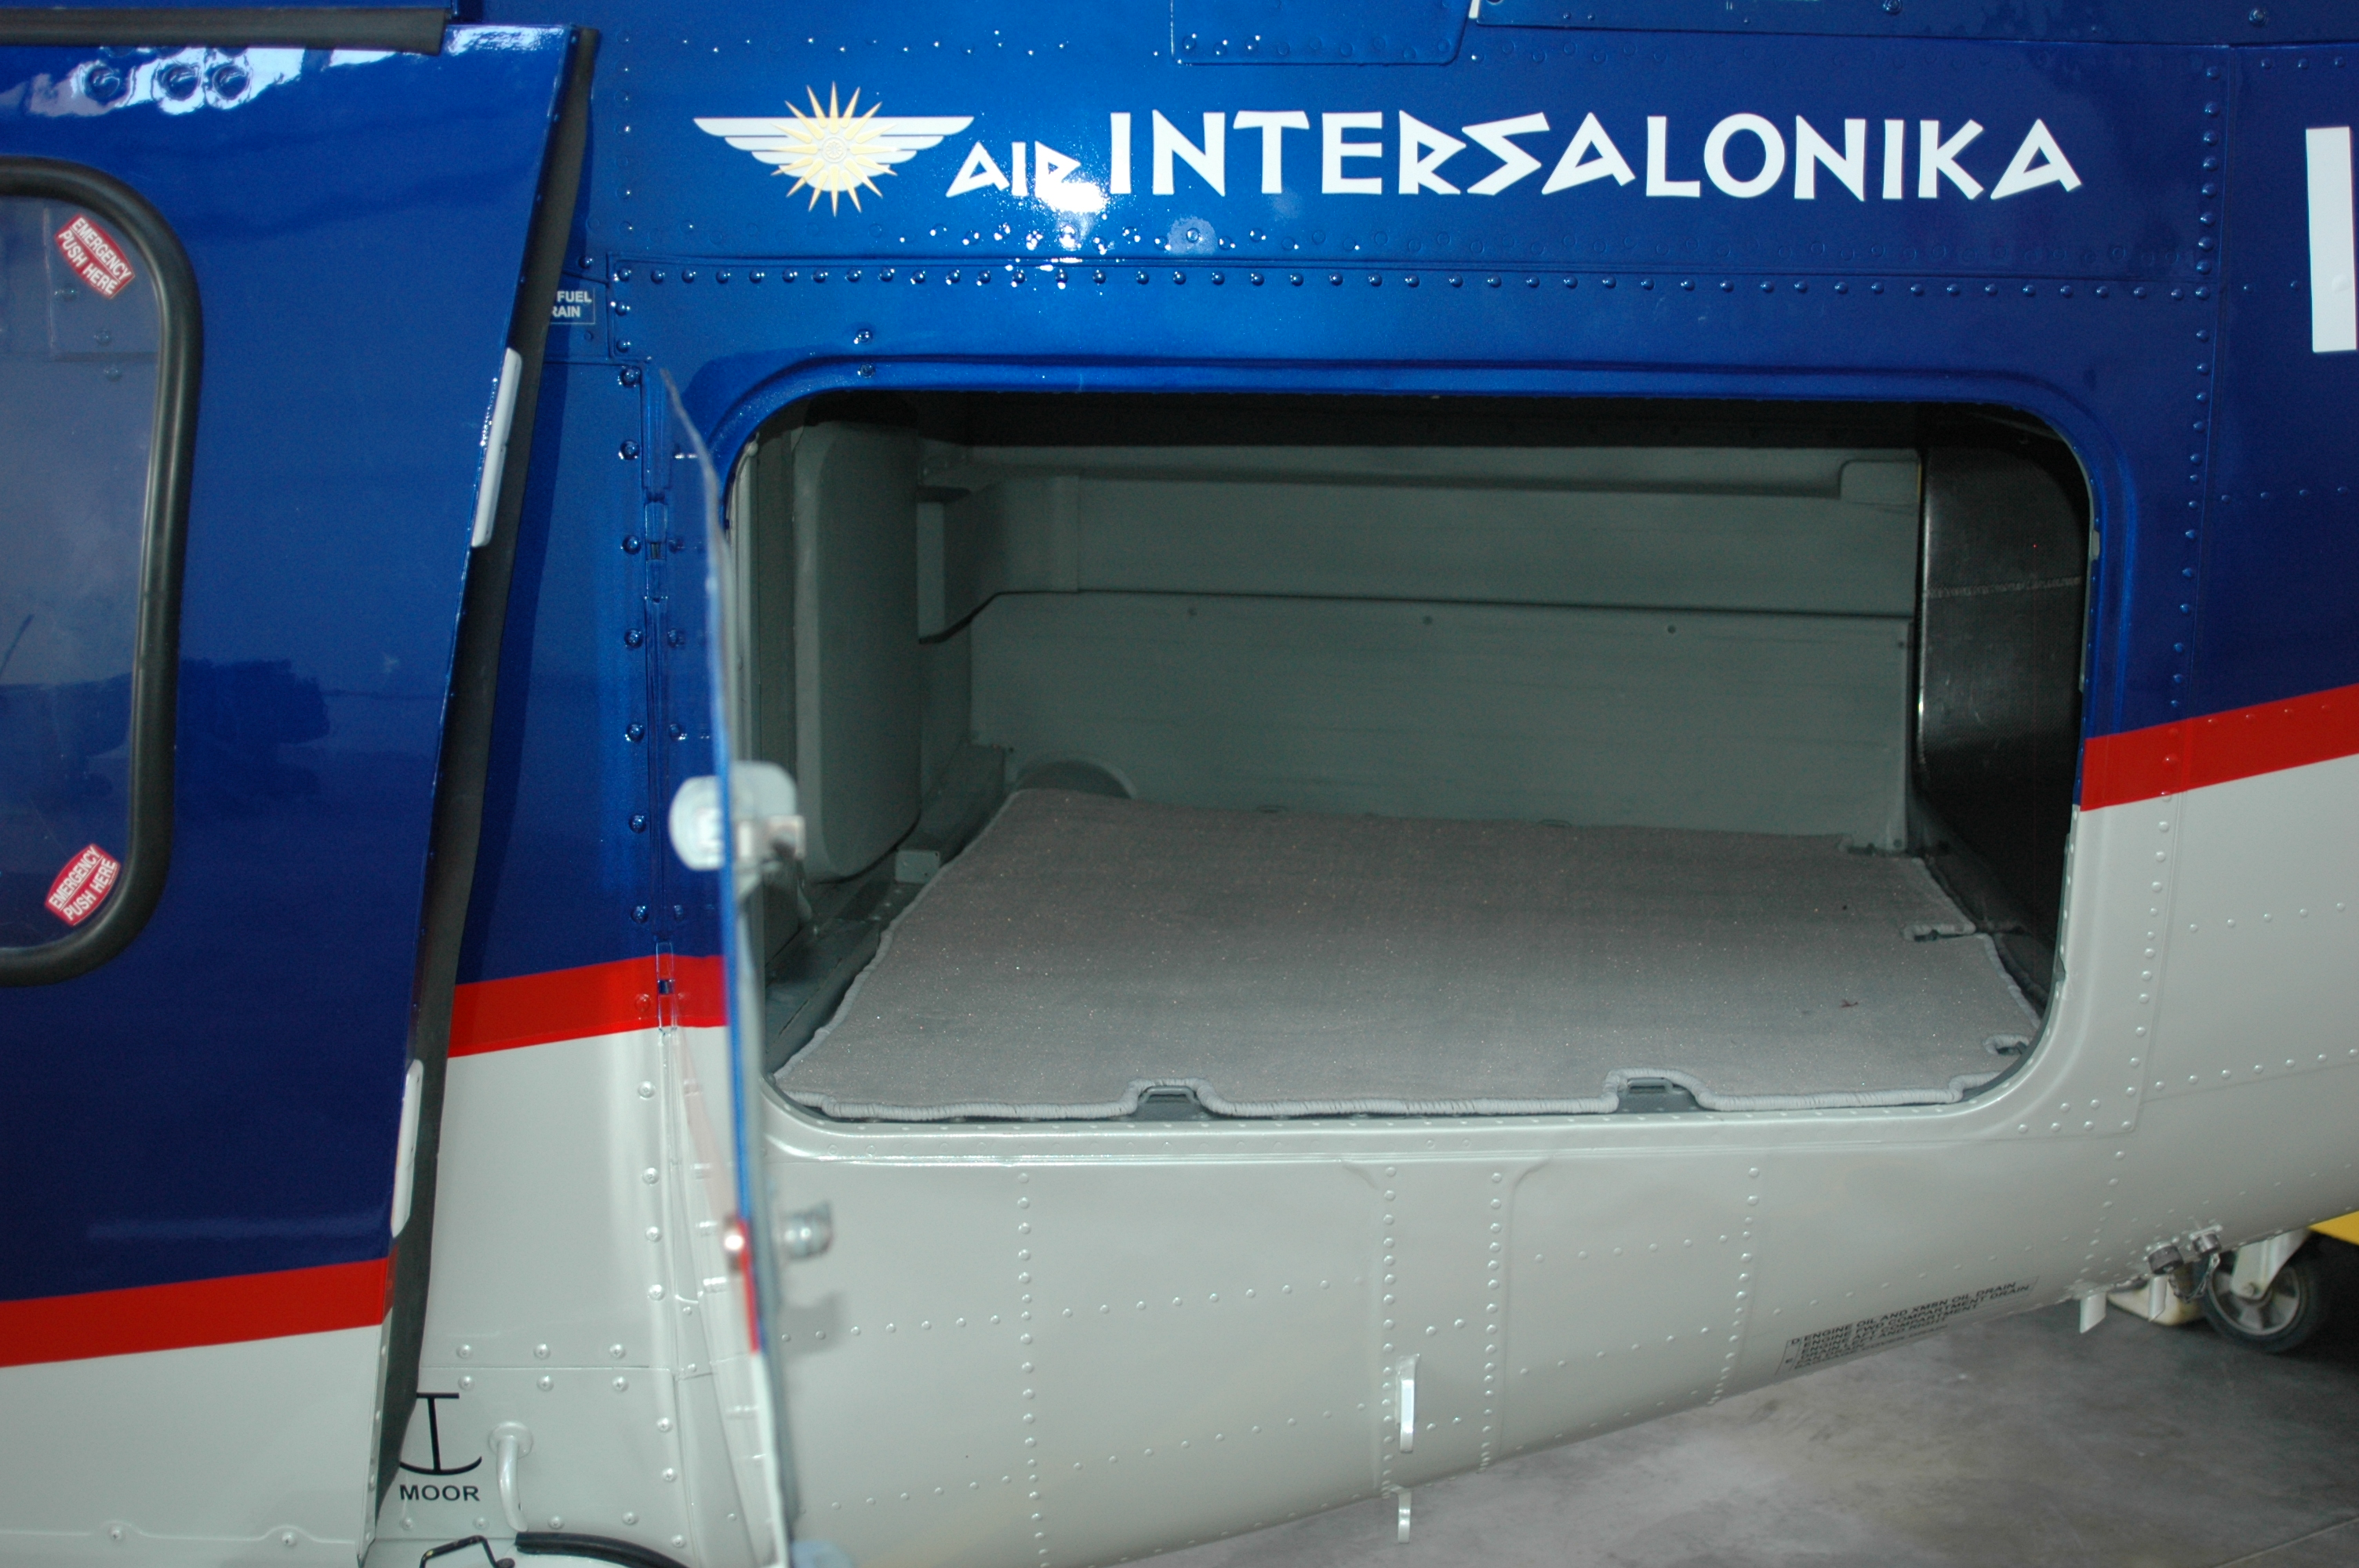 VIP Air Intersalonika Helicopter Fleet - AS355N - Luggage compartment